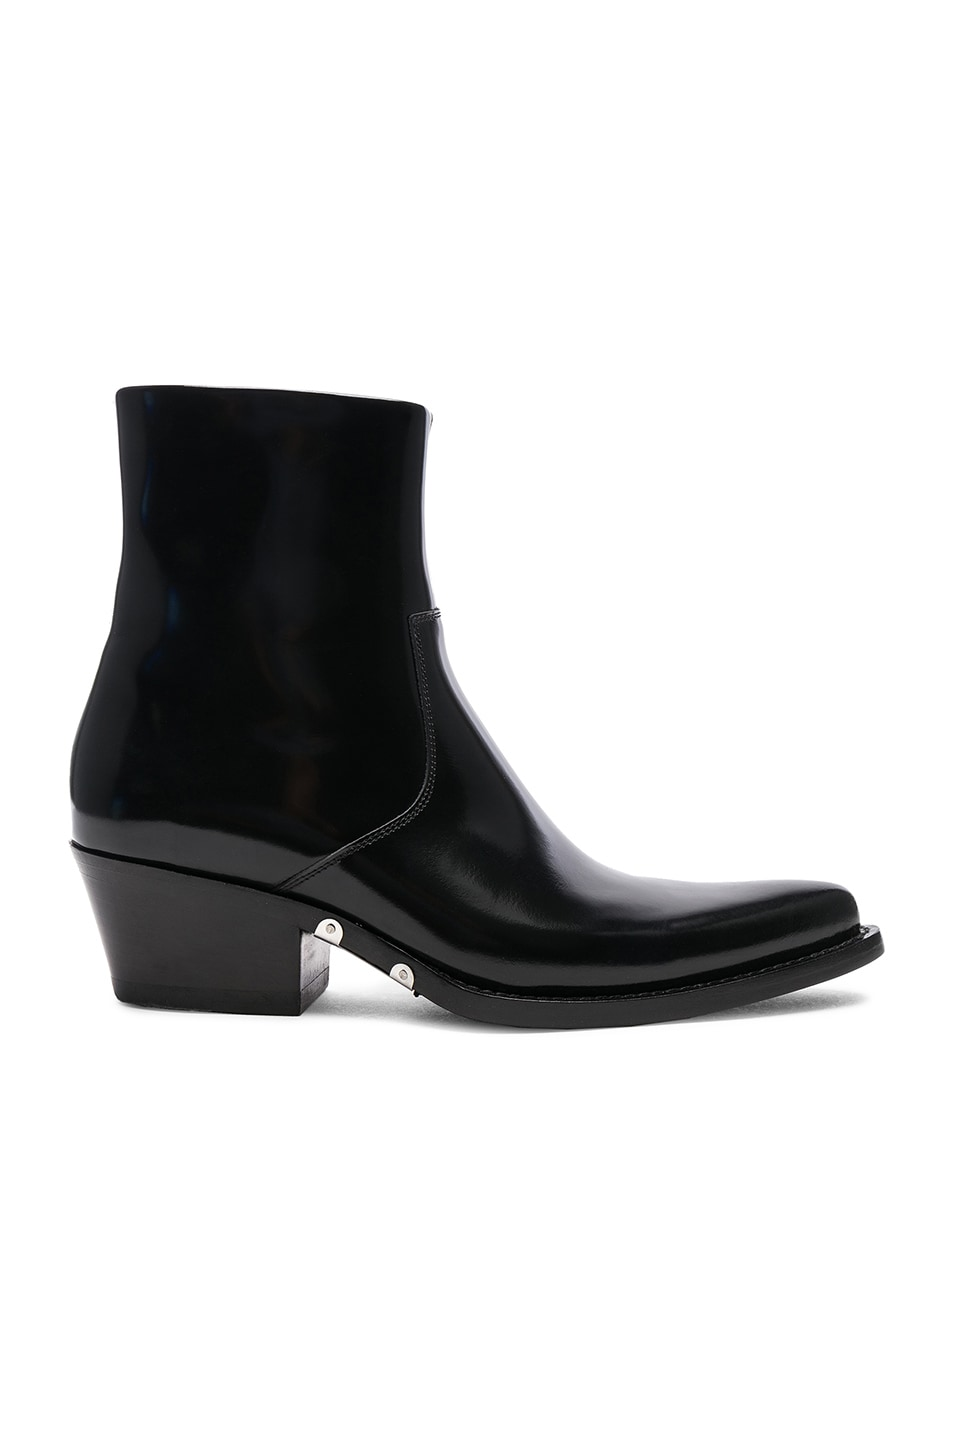 Image 1 of CALVIN KLEIN 205W39NYC Leather Short Western Boots in Black